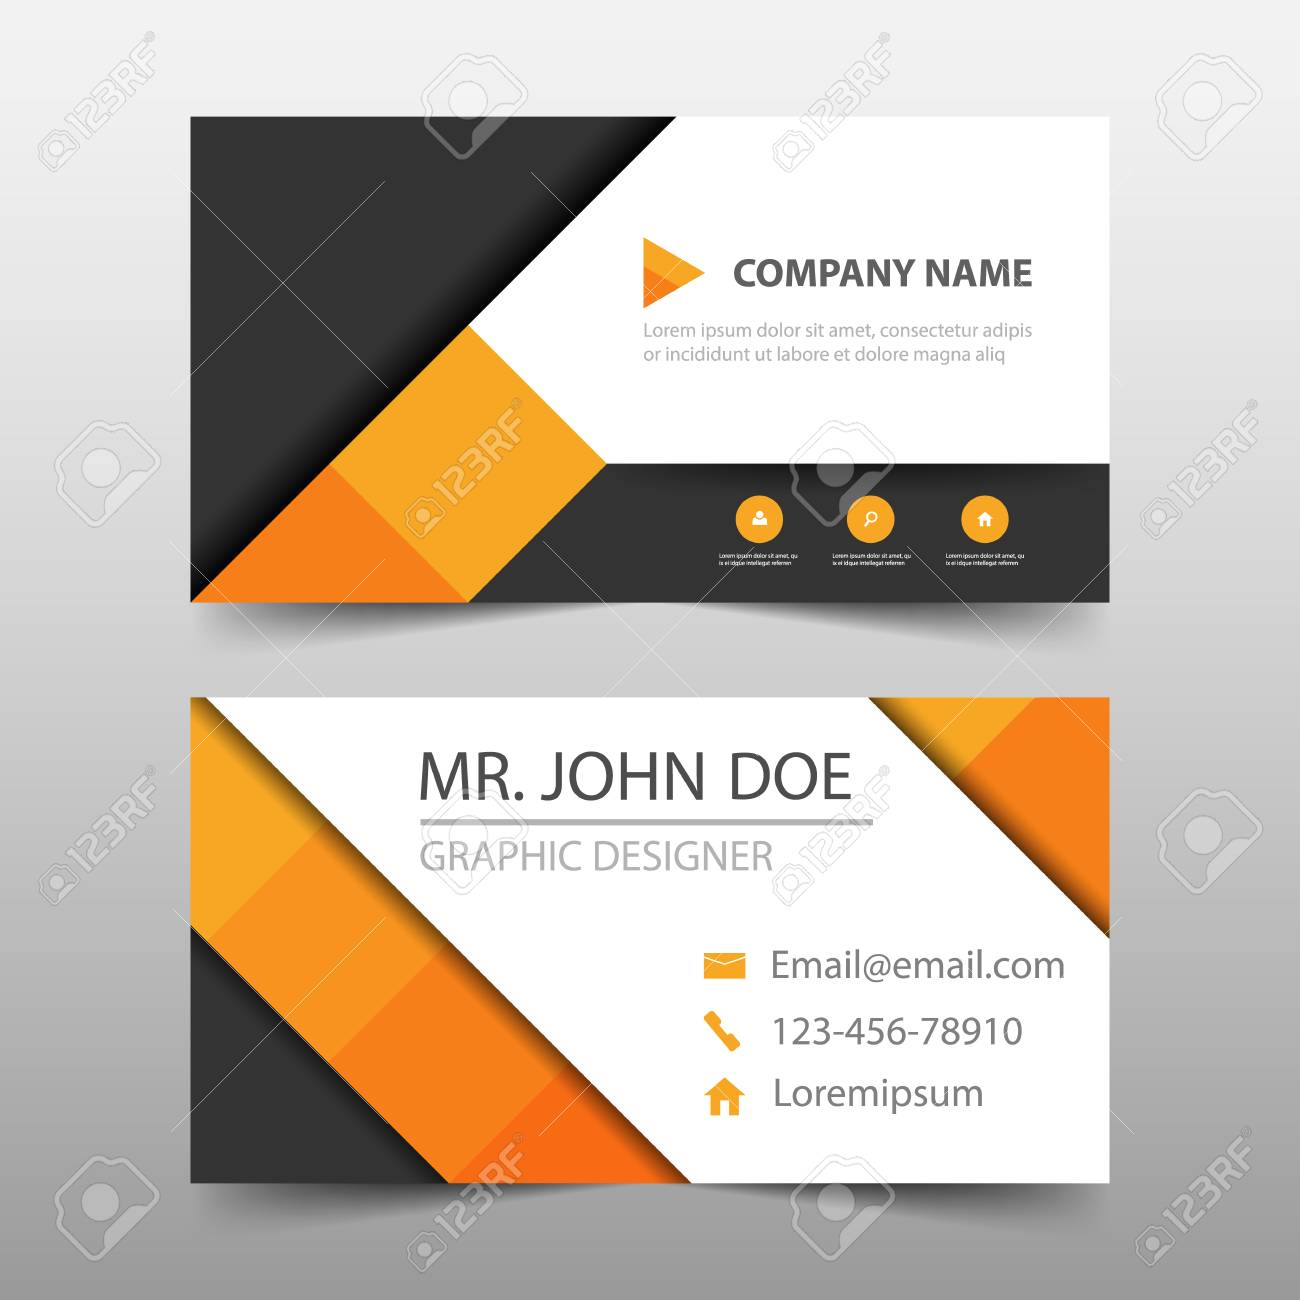 Orange Square Corporate Business Card Name Template Horizontal Simple Clean Layout Design